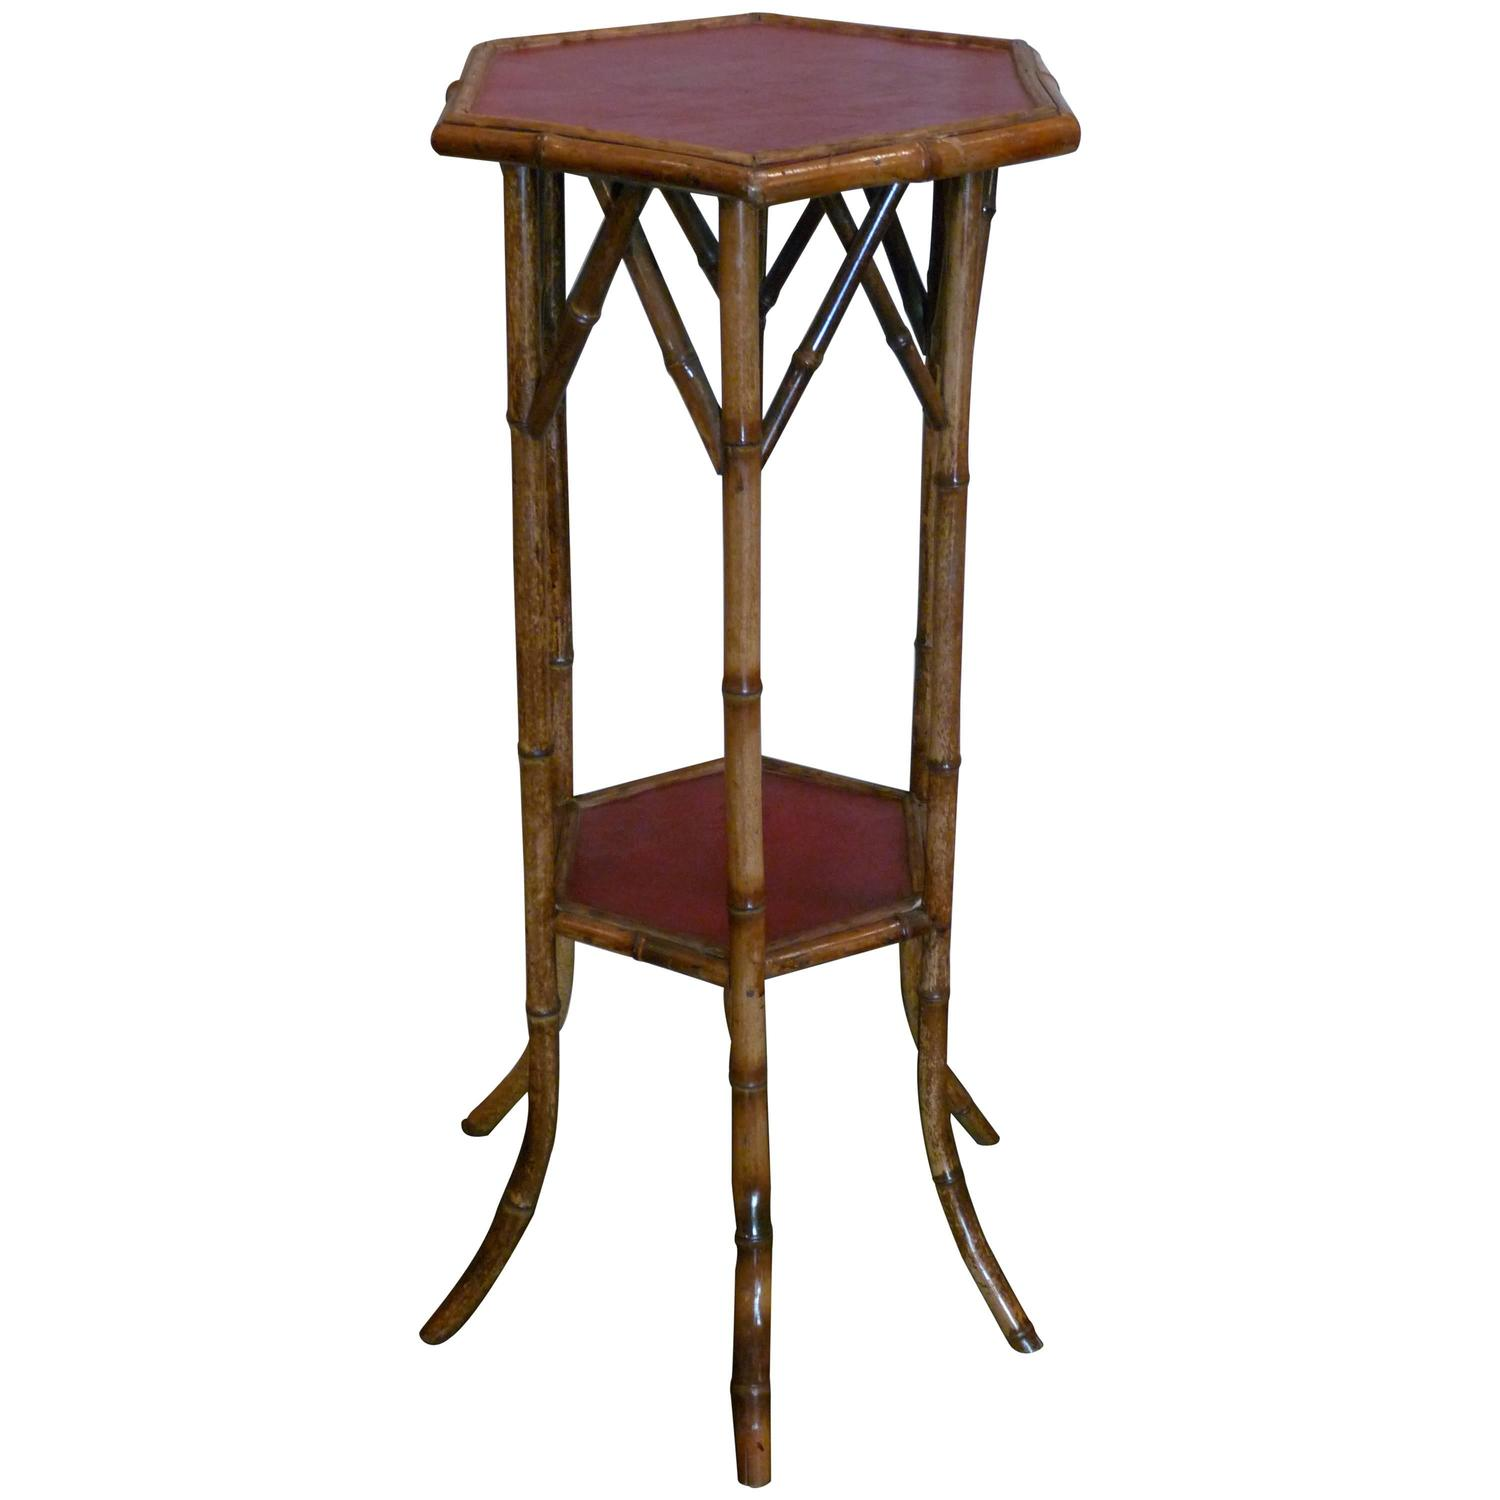 Bamboo Plant On Table: English Bamboo Plant Stand At 1stdibs